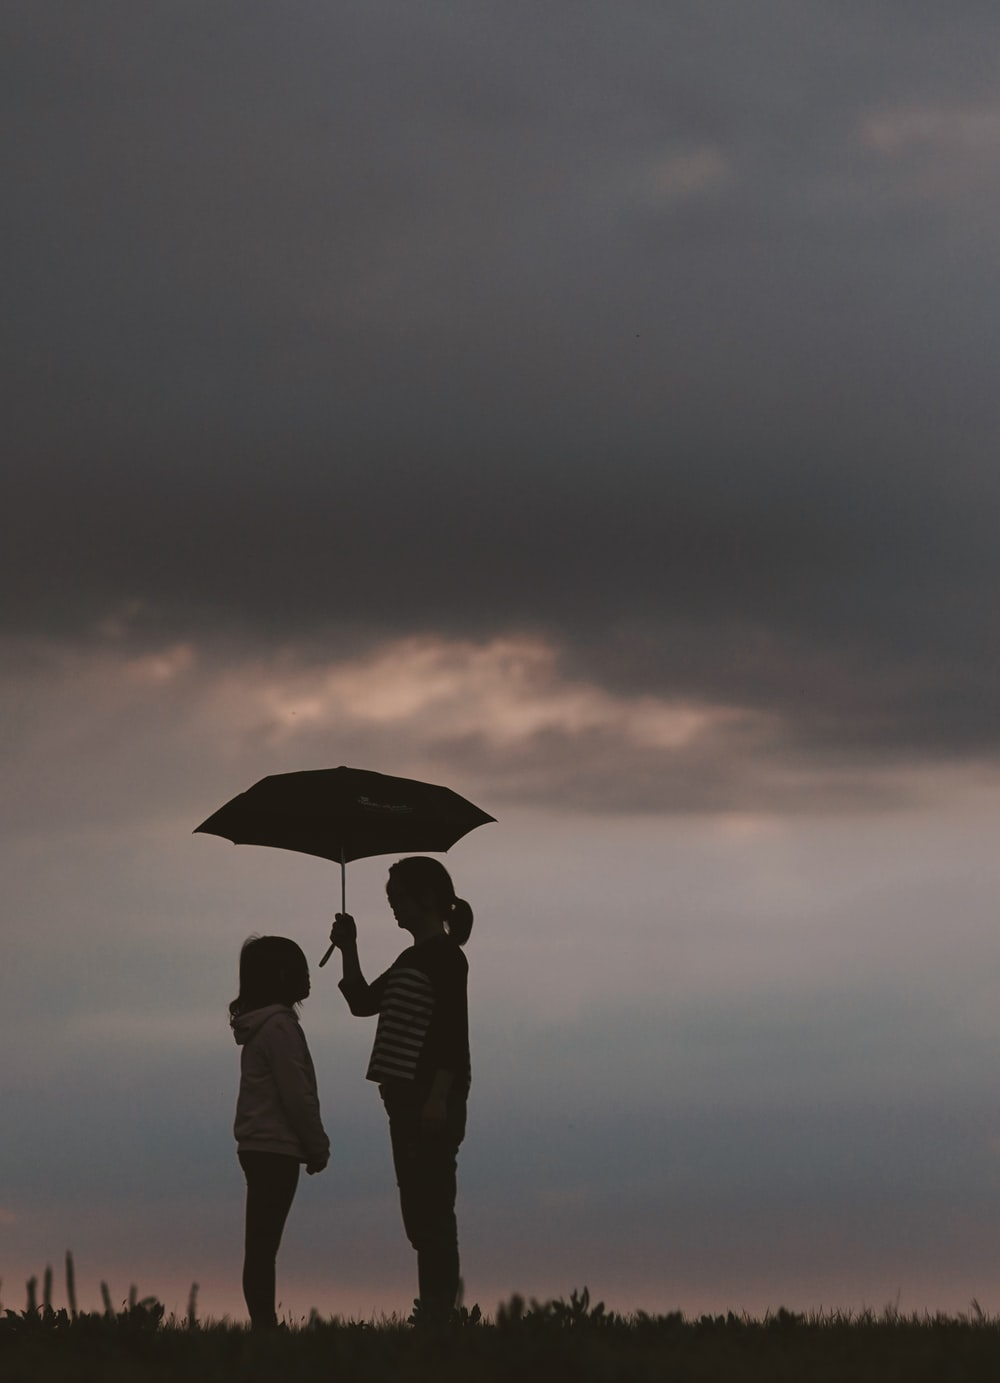 silhouette of woman holding umbrella standing in front of girl on hill during night time